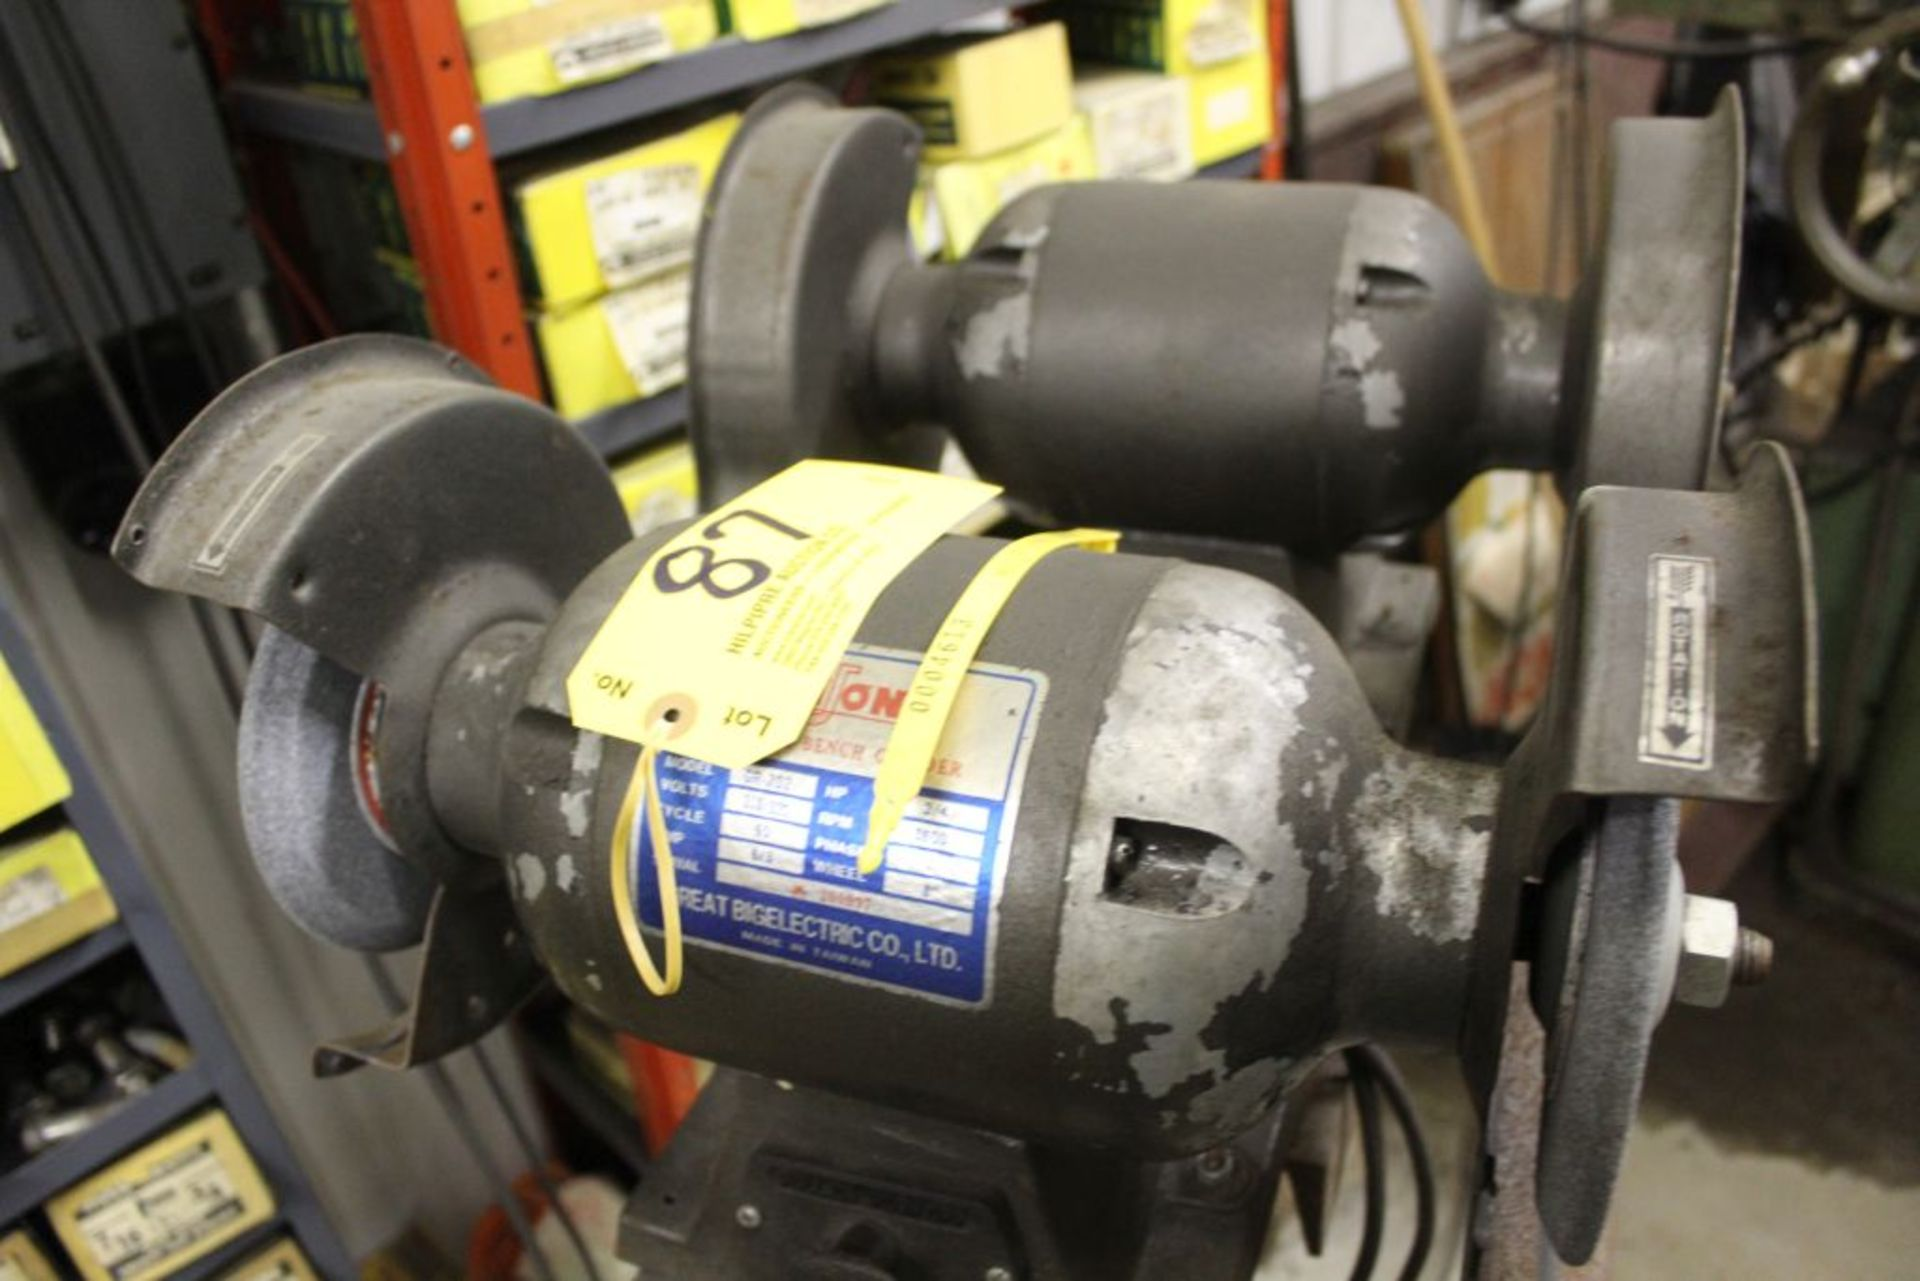 Niuon G202 double spindle grinders, 3/4 hp on stand.